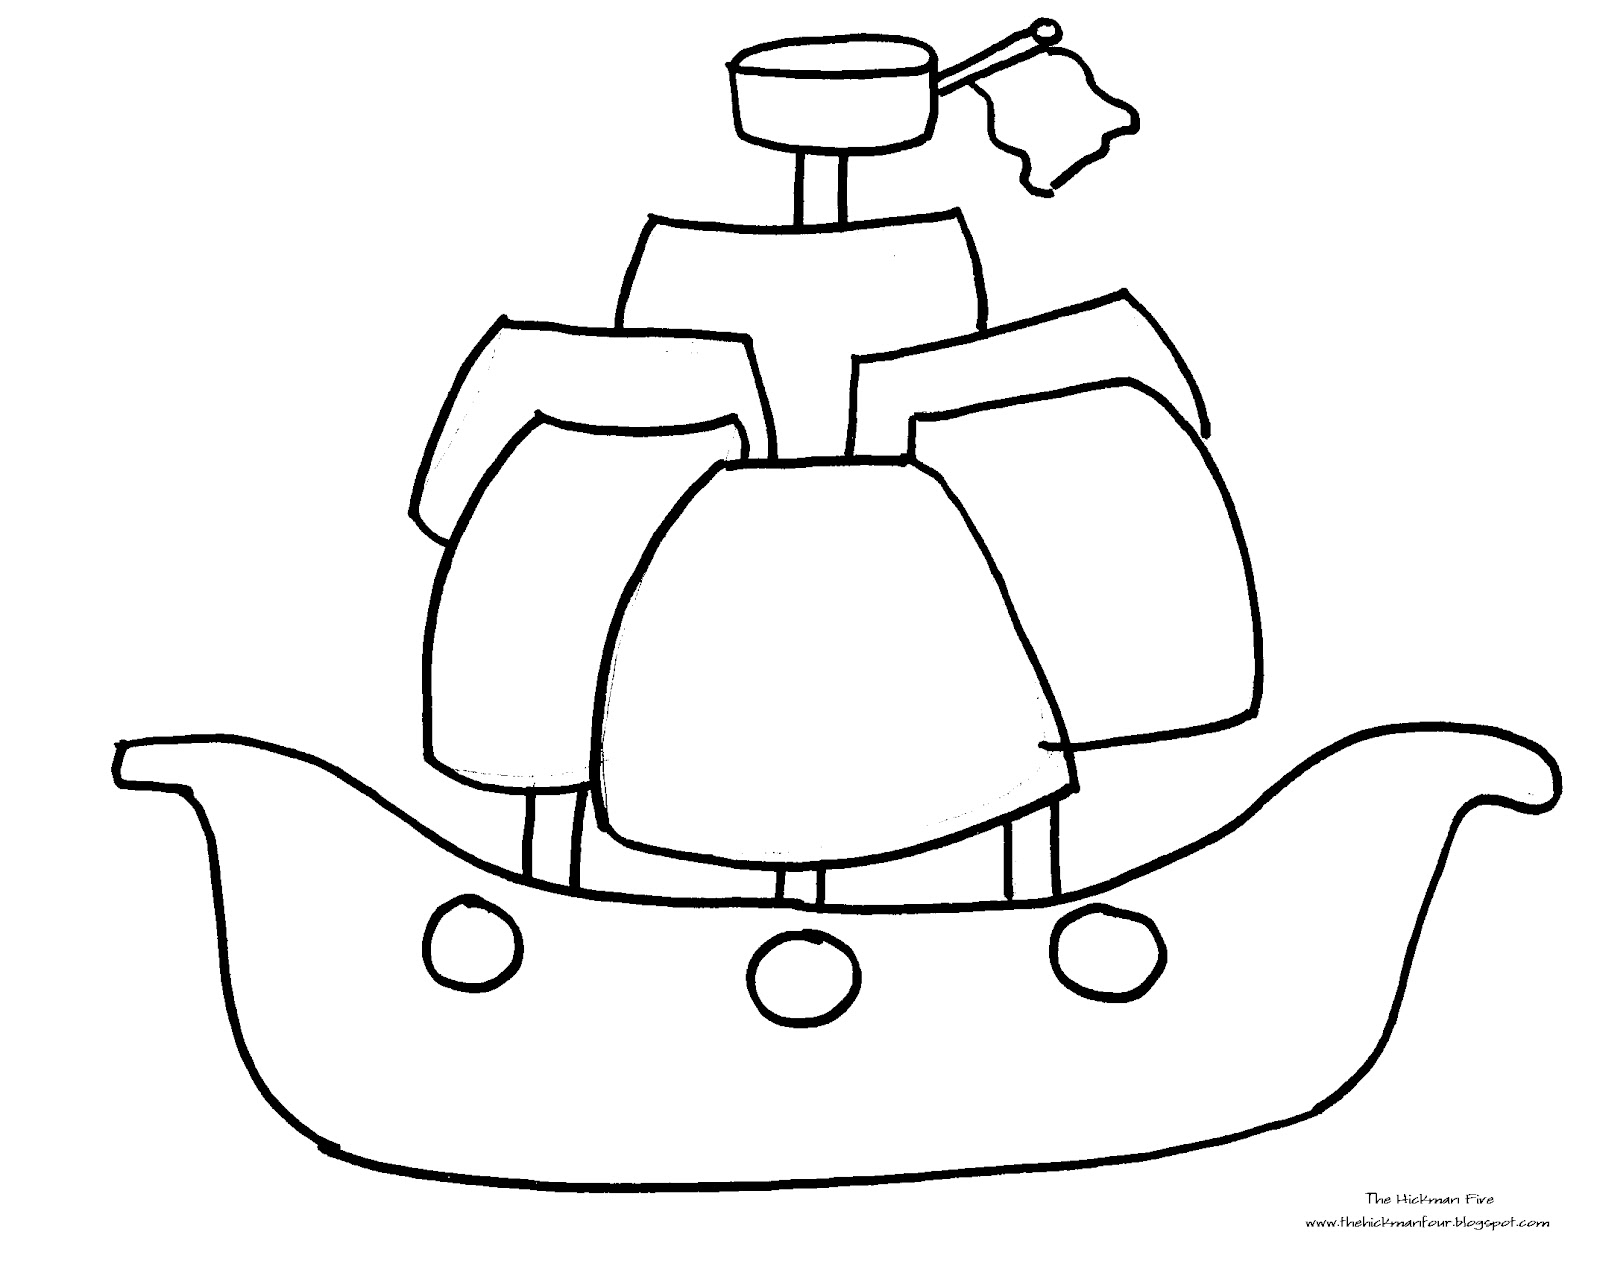 Lego Friends Coloring Pages   Free download best Lego Friends ...